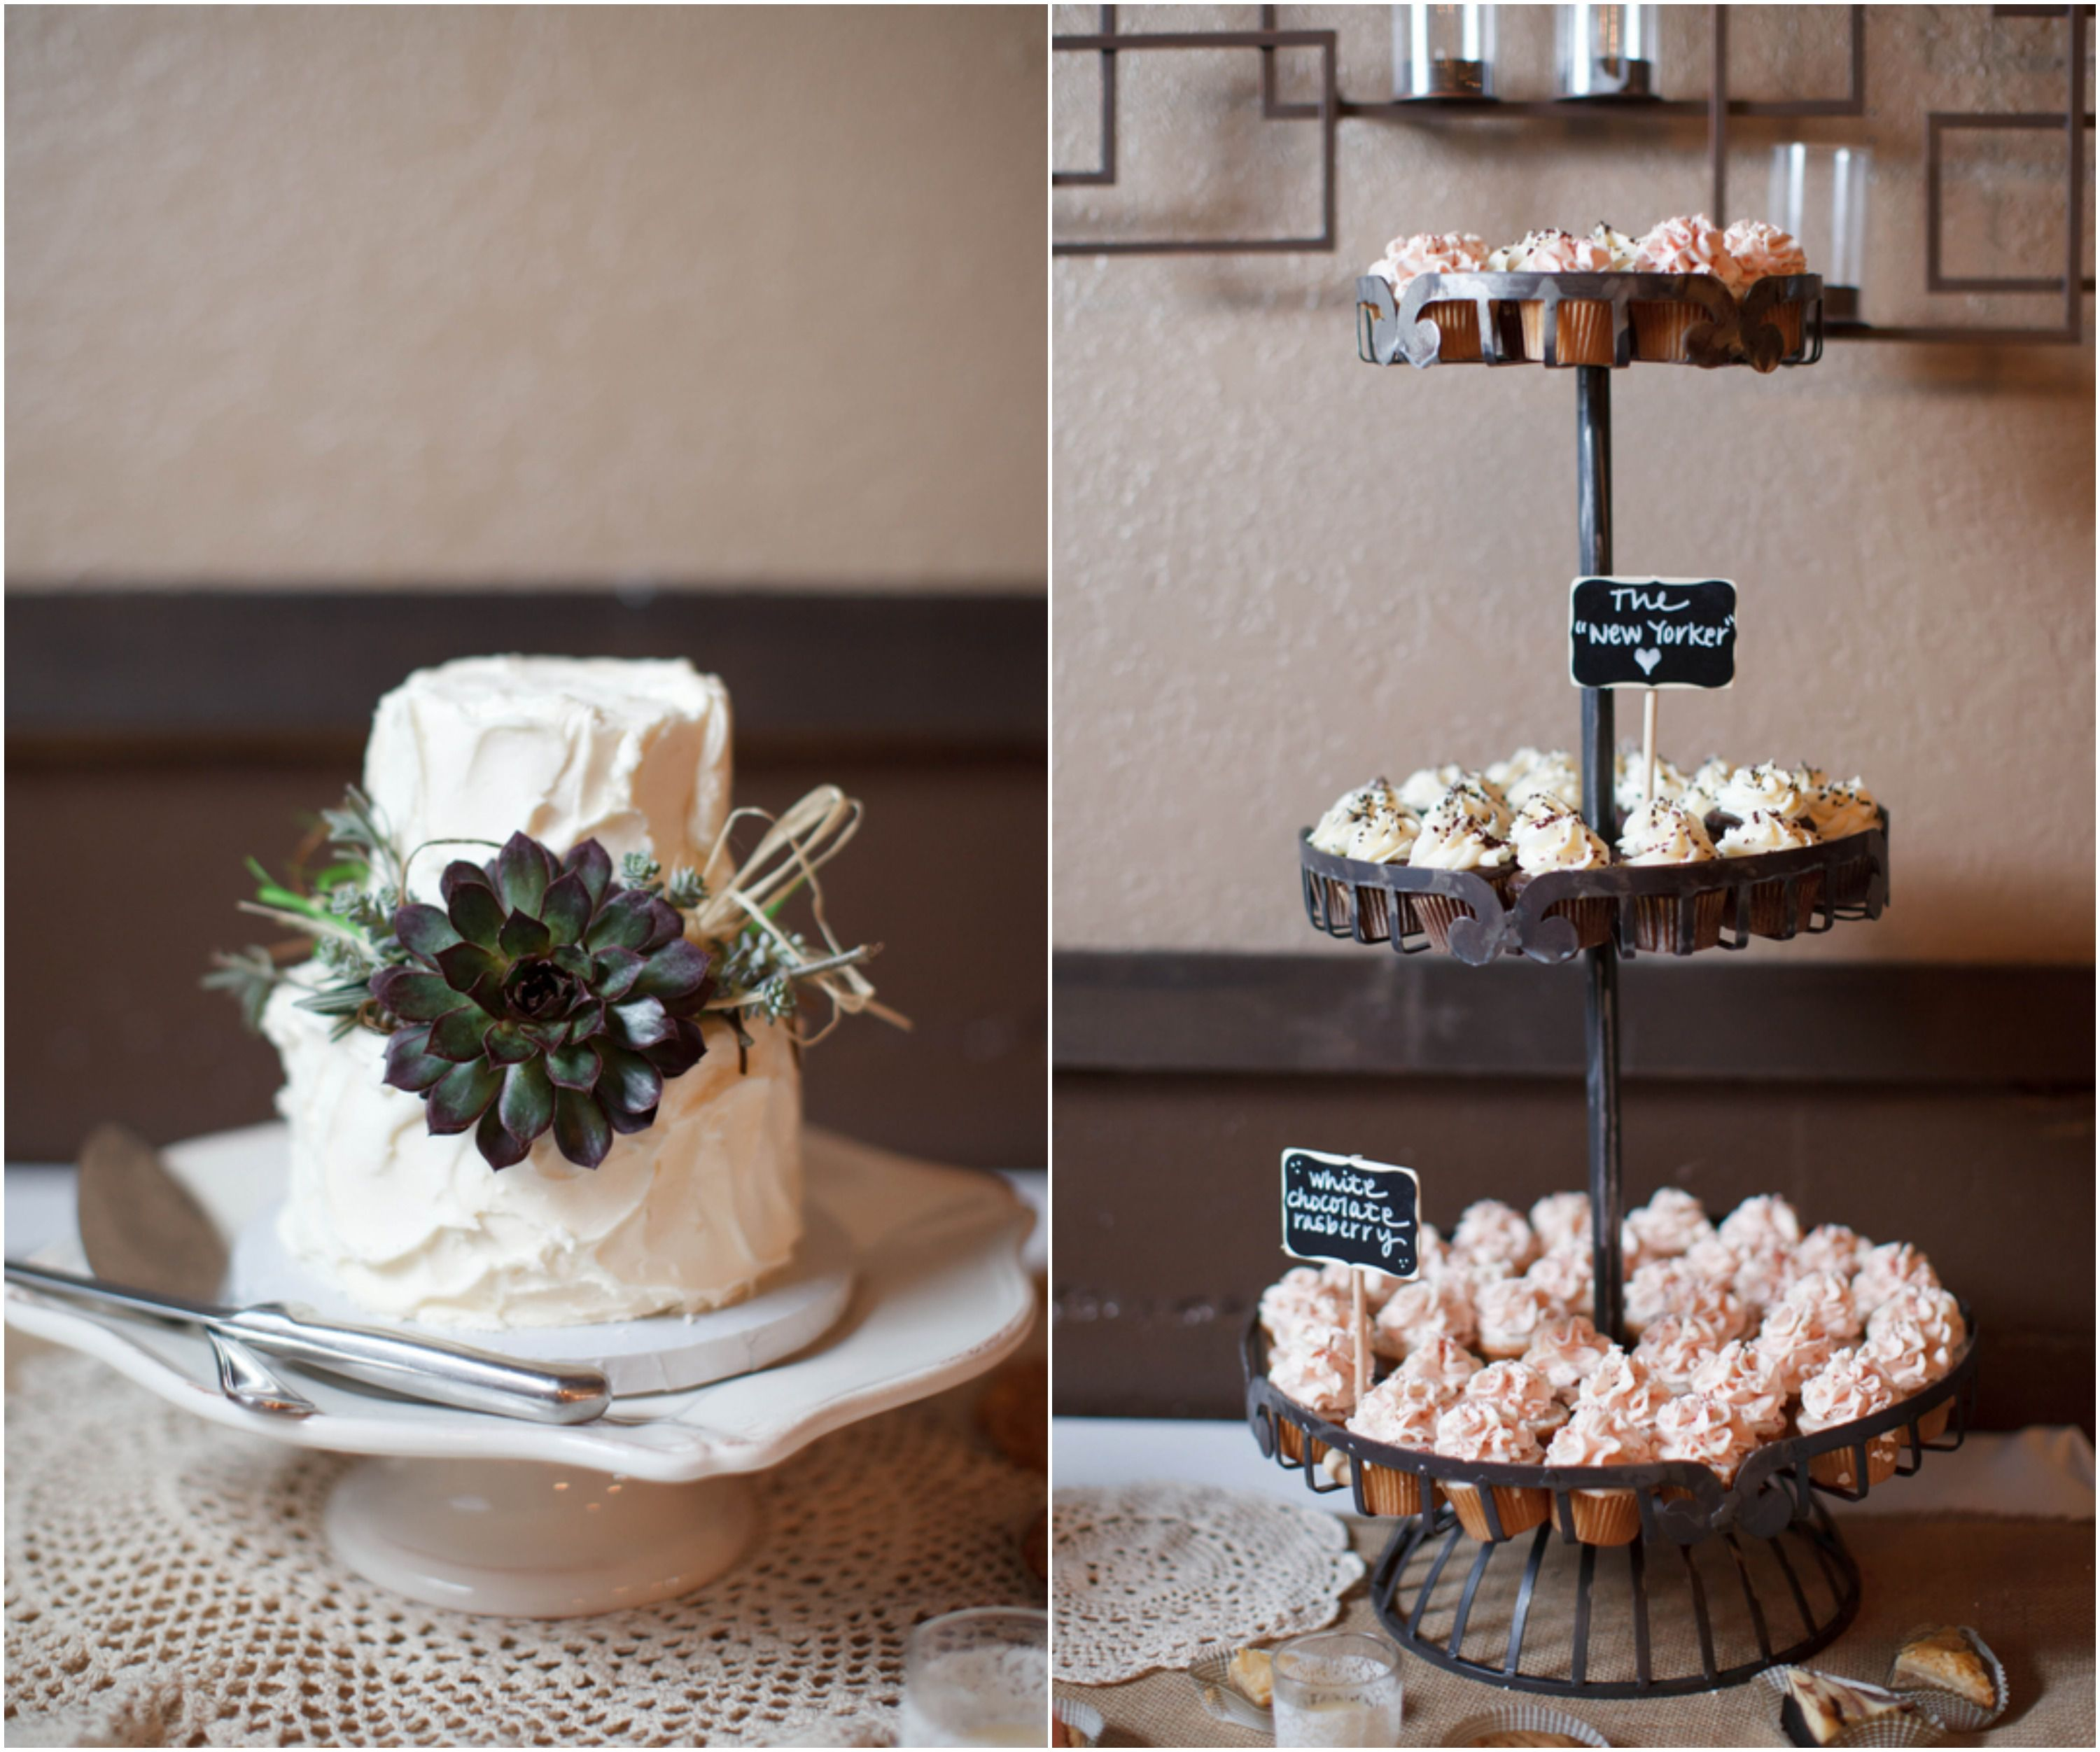 Rustic Chic Wedding Cakes: Romantic Rustic Country Wedding